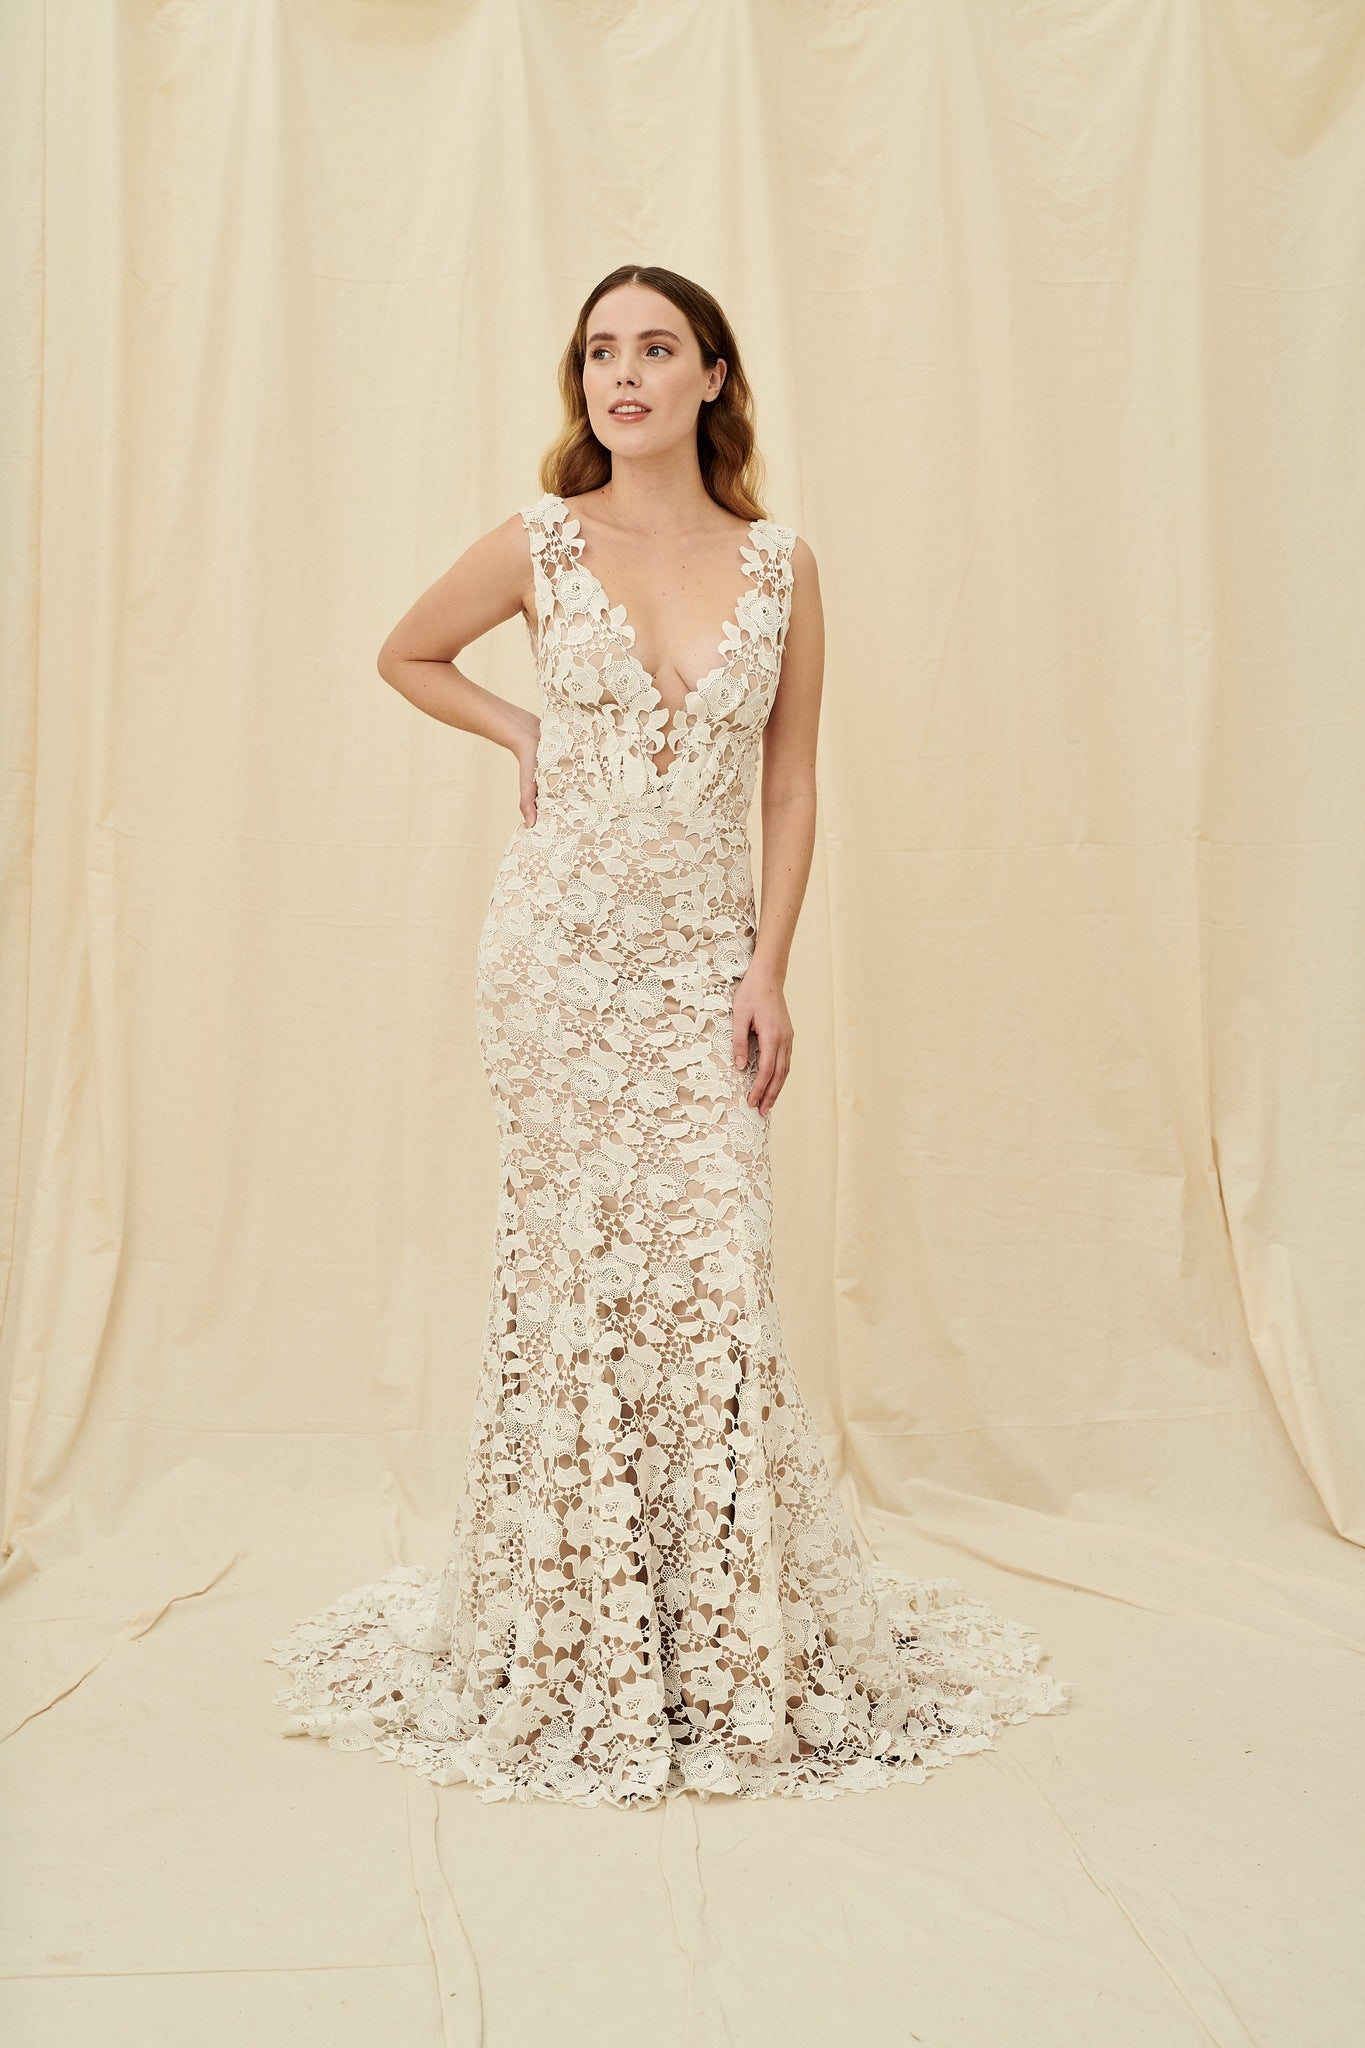 A fitted mermaid wedding gown with off-white floral lace over taupe lining